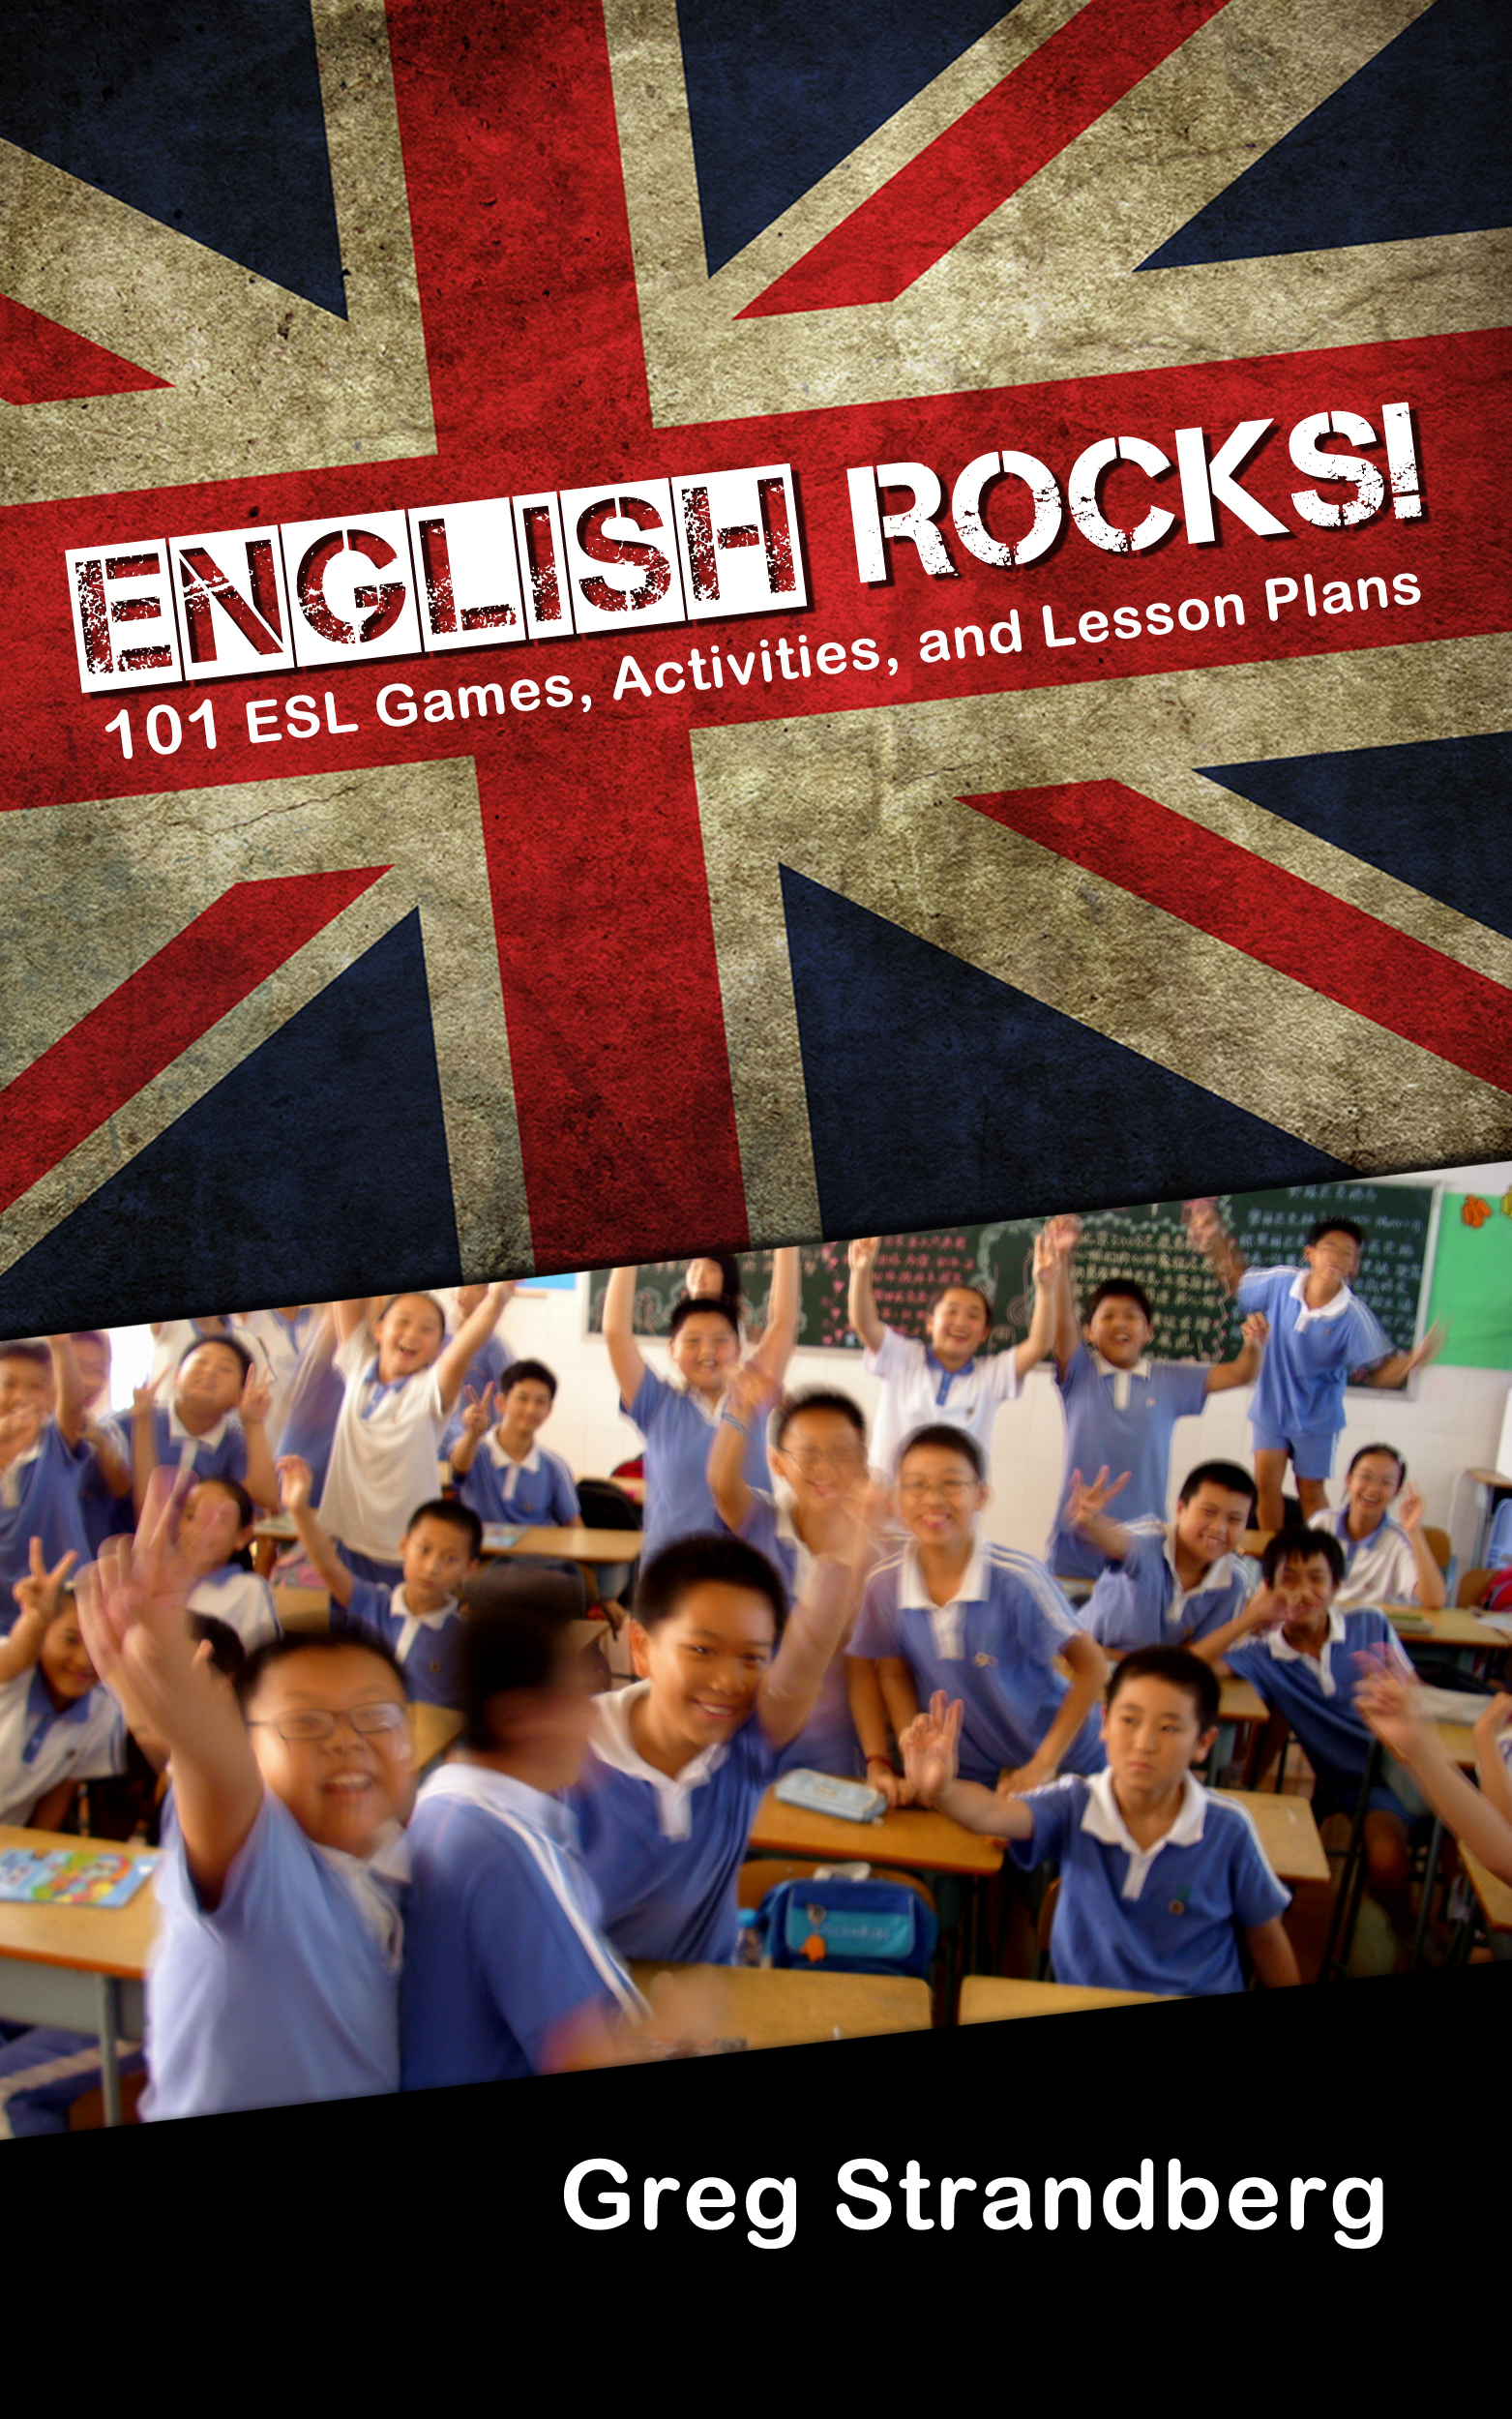 Greg Strandberg - English Rocks! 101 ESL Games, Activities, and Lesson Plans